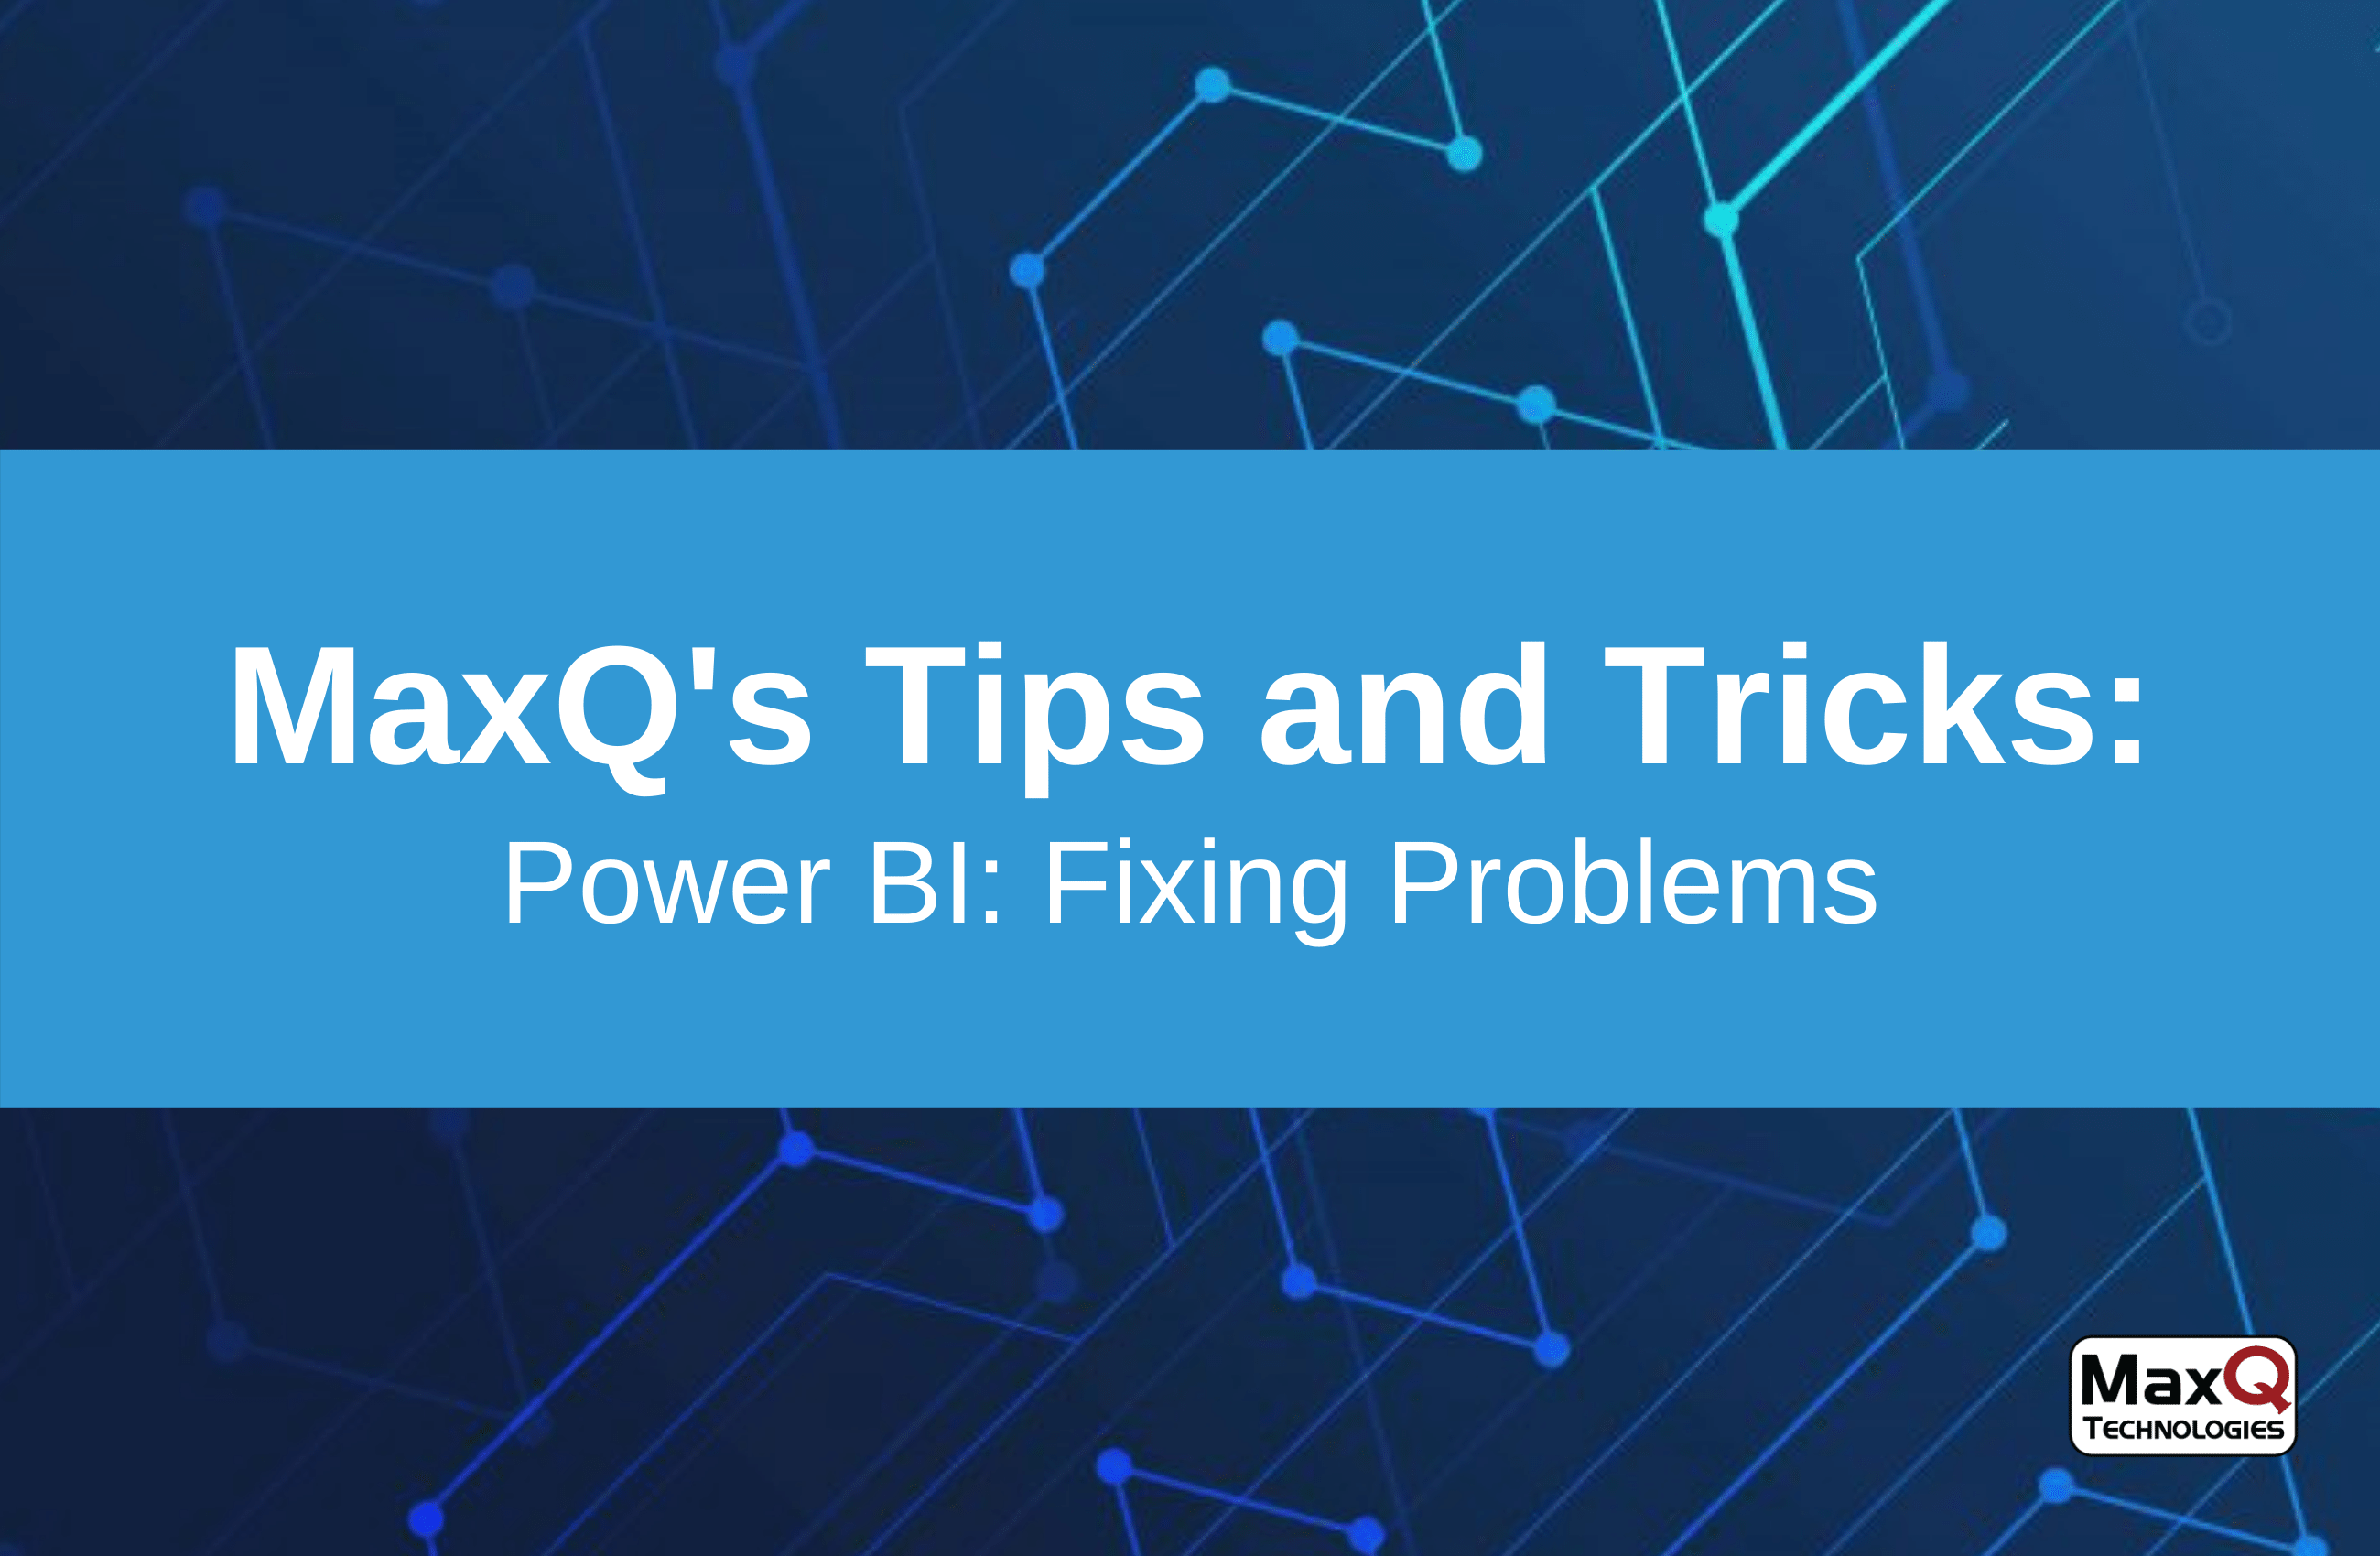 Power BI: Fixing Problems